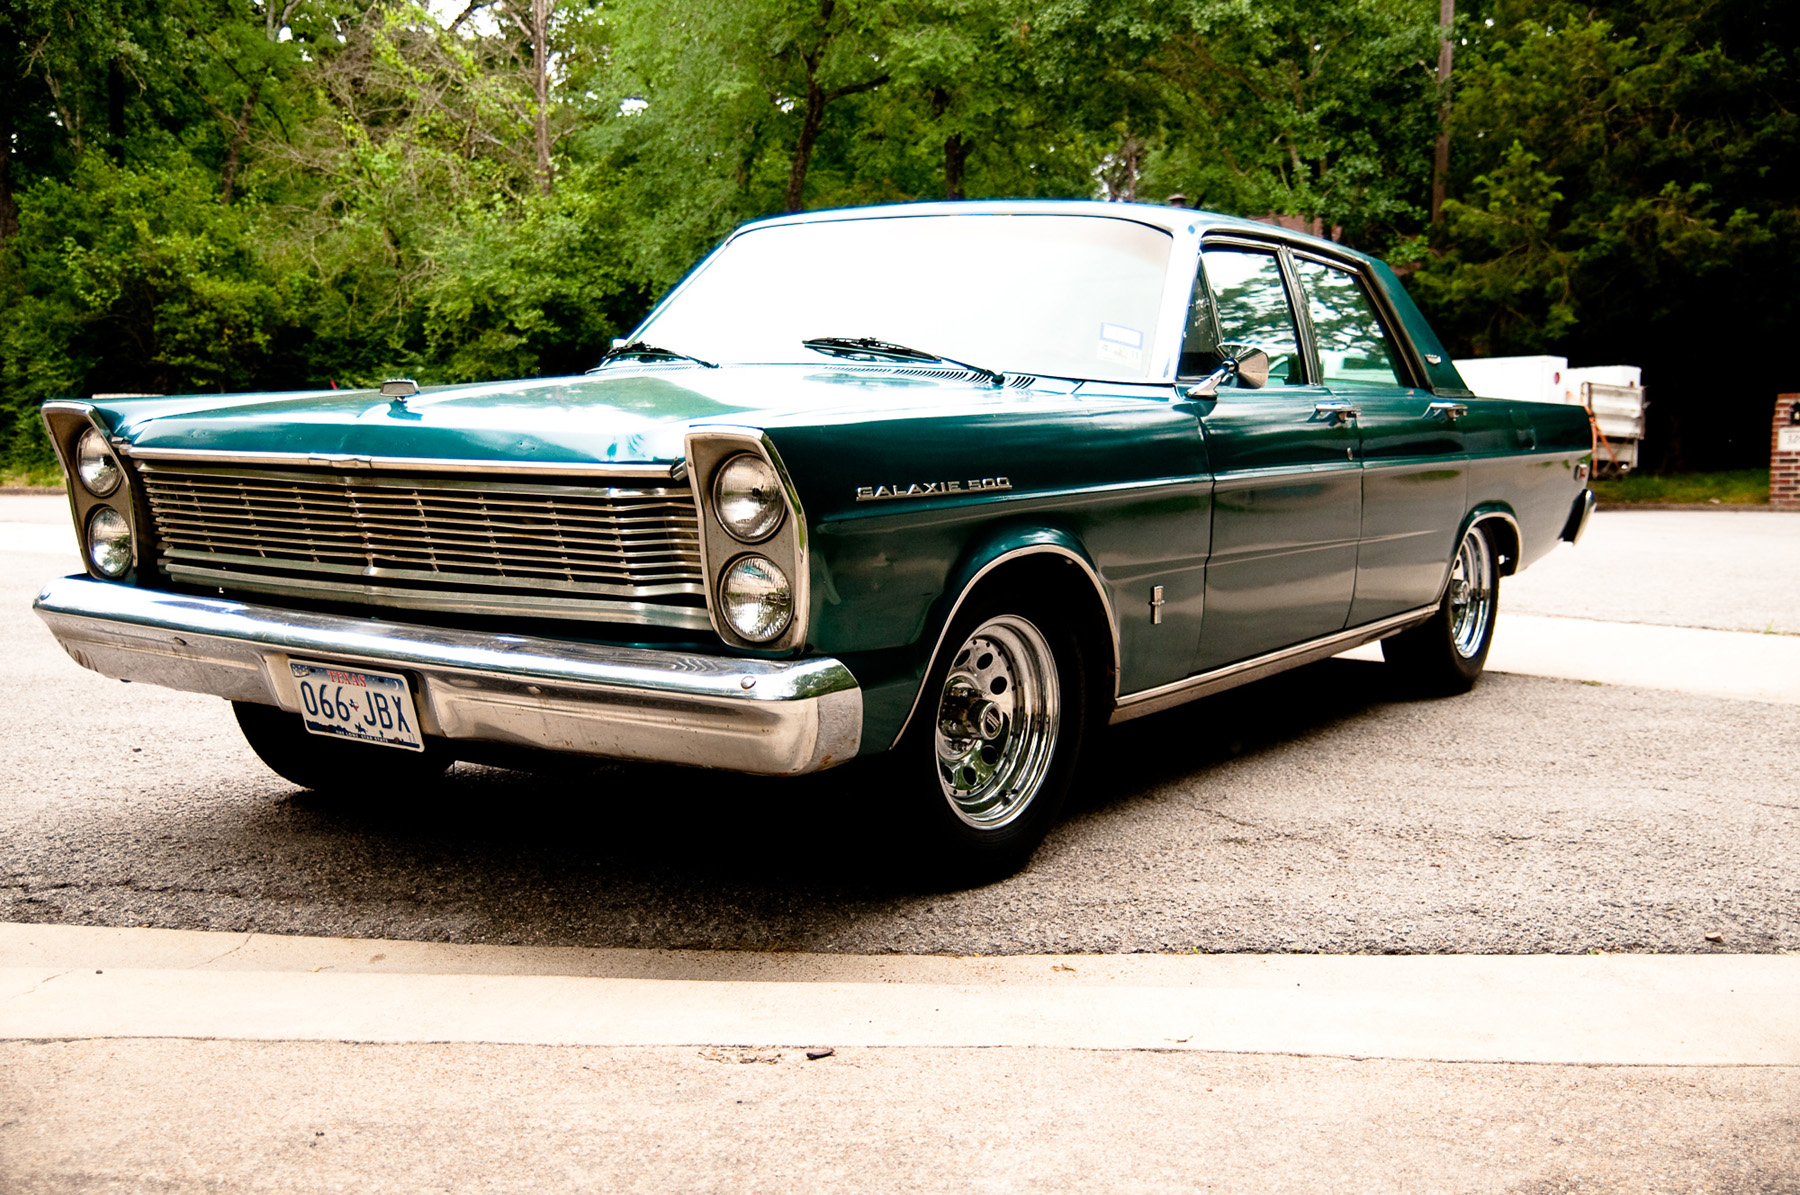 1965 Ford Galaxie 500 Purchased By Teen From Used Car Lot   Classic     Seven years later  the 1965 Ford Galaxie 500 was sitting on a used car lot  where it was spotted by 17 year old Shelton Riggins  The teenager had  200